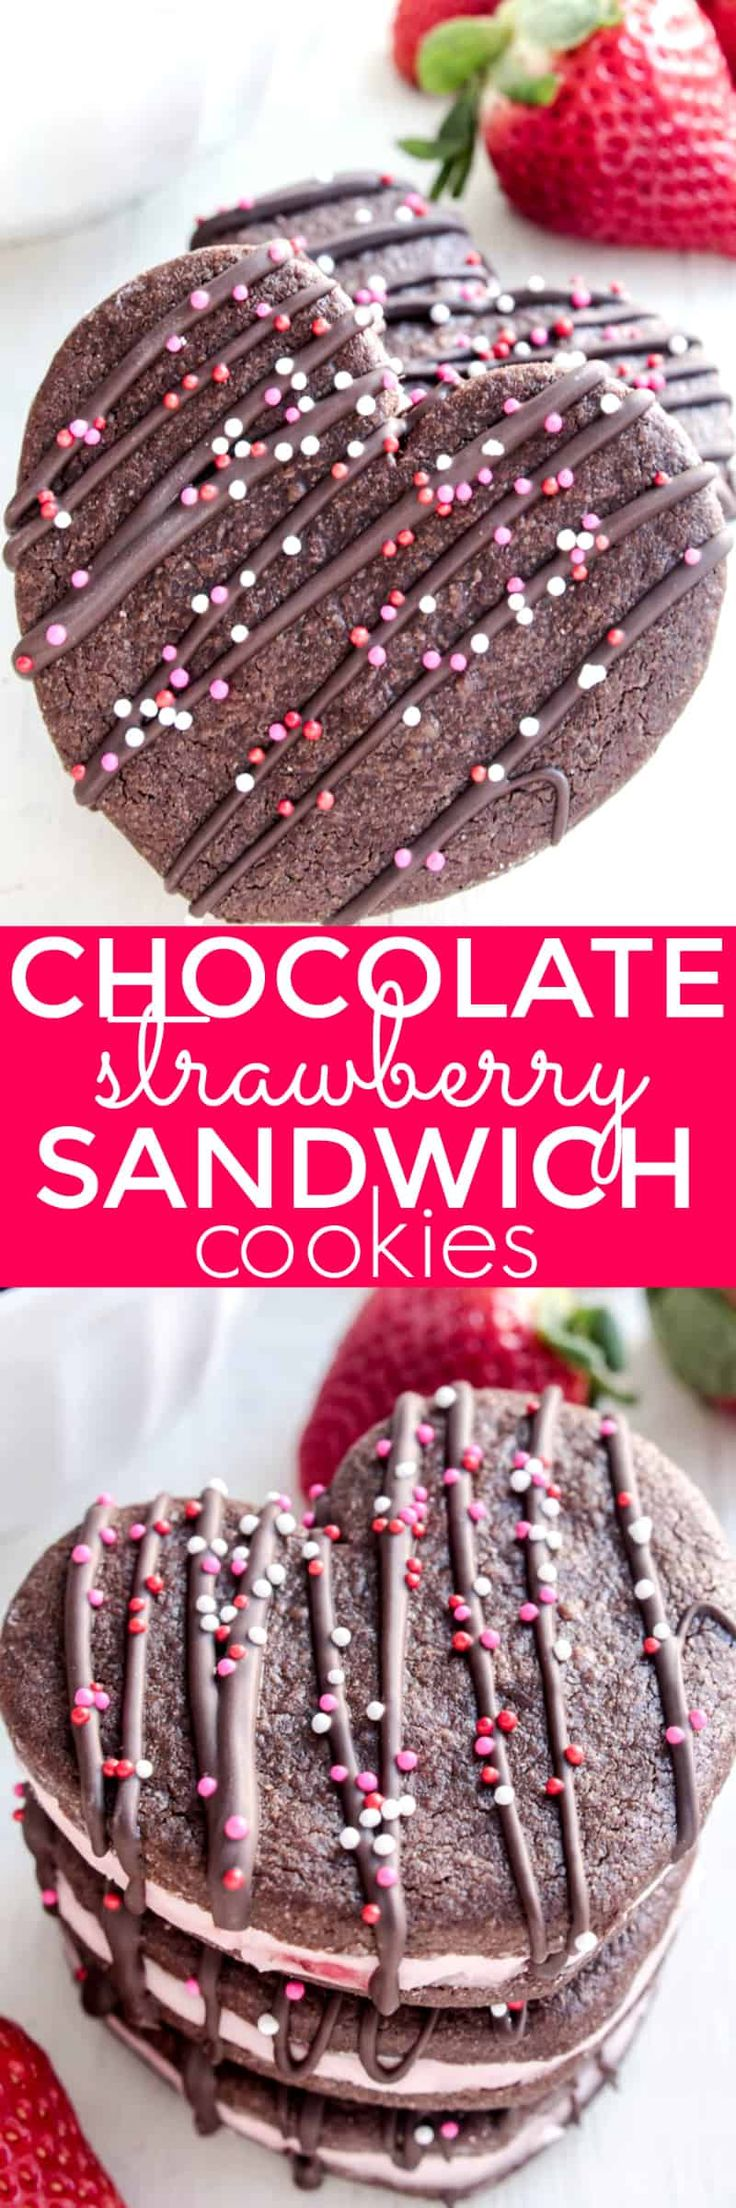 Chocolate Strawberry Sandwich Cookies...just in time for Valentine's Day! You're sure to fall in love with these adorable heart-shaped cookies - perfect for classroom parties, teacher gifts, or a special Valentine's Day treat. A delicious combination of chocolate sugar cookies and strawberry creme filling, they're surprisingly easy to make and seriously fun to eat. And with a little drizzle of chocolate and some fun colored sprinkles on top, they're exactly what you need t...